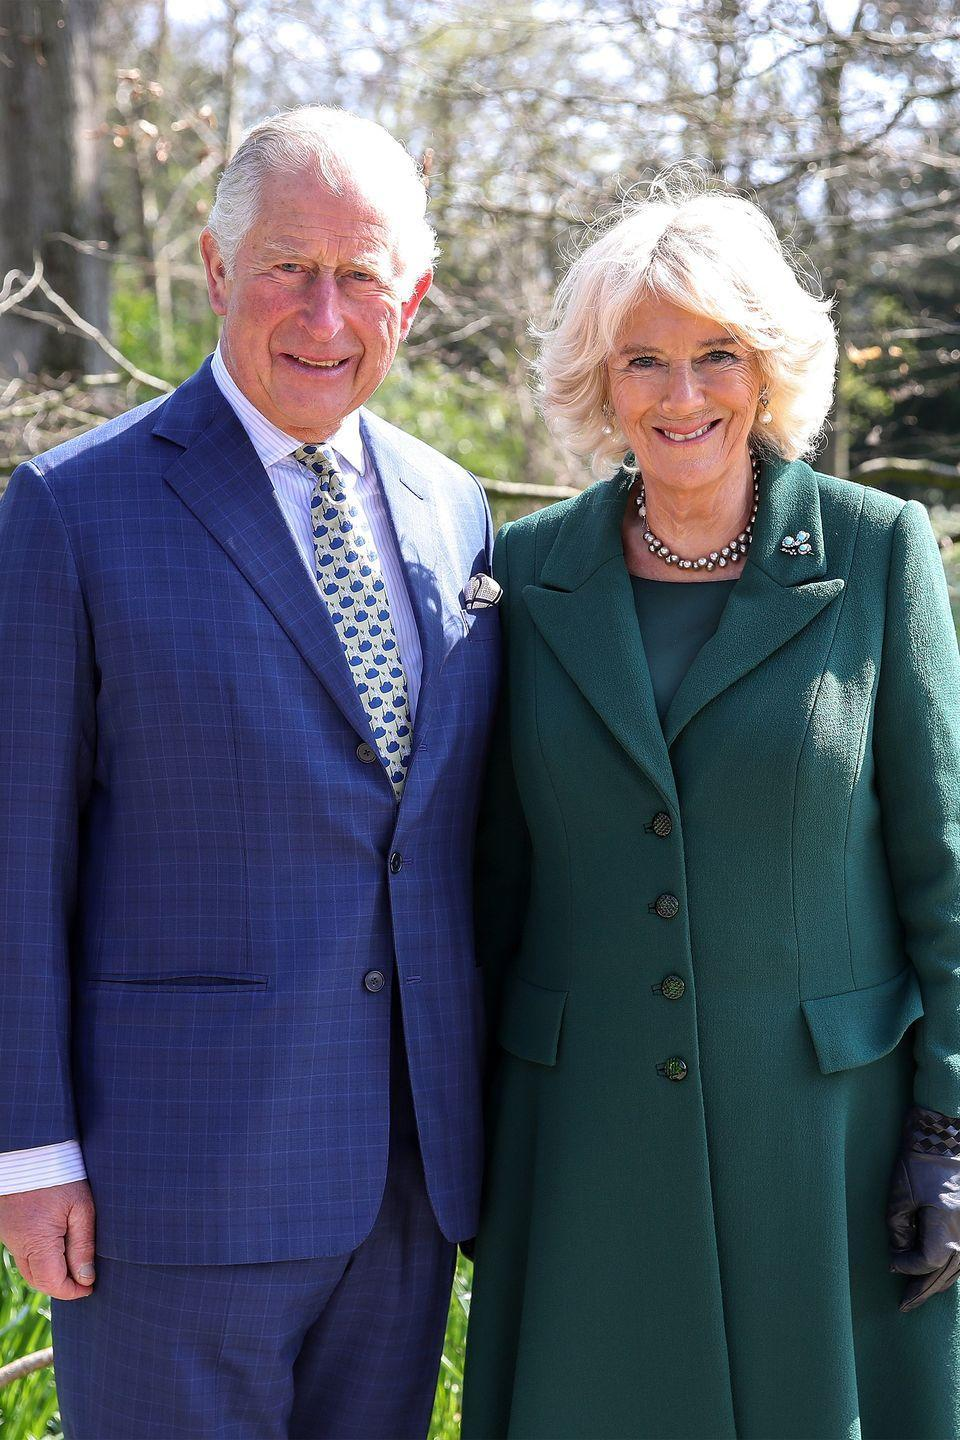 <p>Prince Charles and Camilla attend the reopening of Hillsborough Castle in Belfast, Northern Ireland.</p>